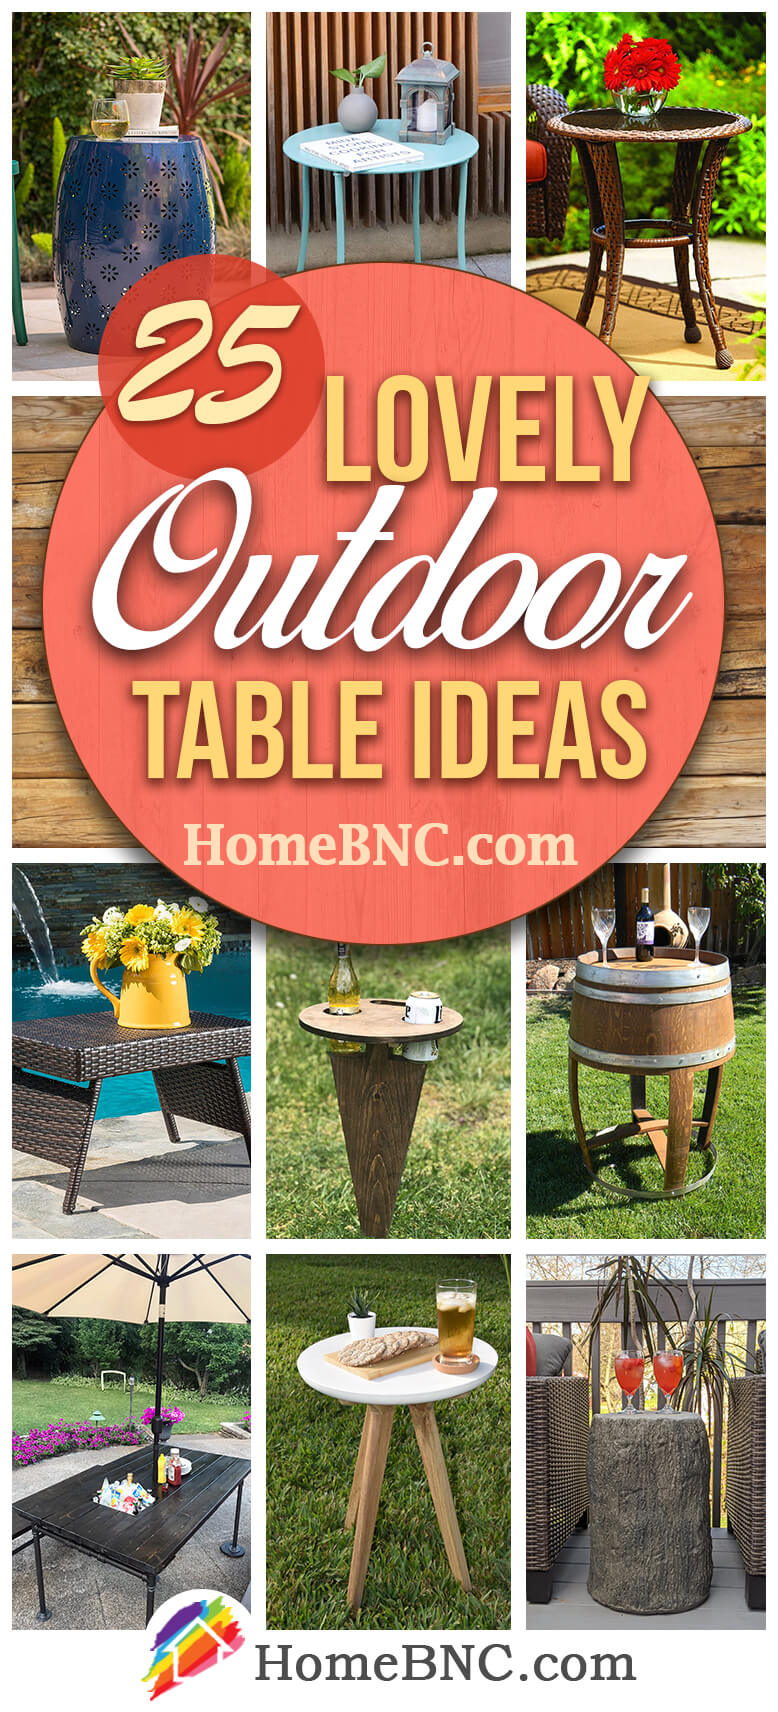 Best Outdoor Table Ideas